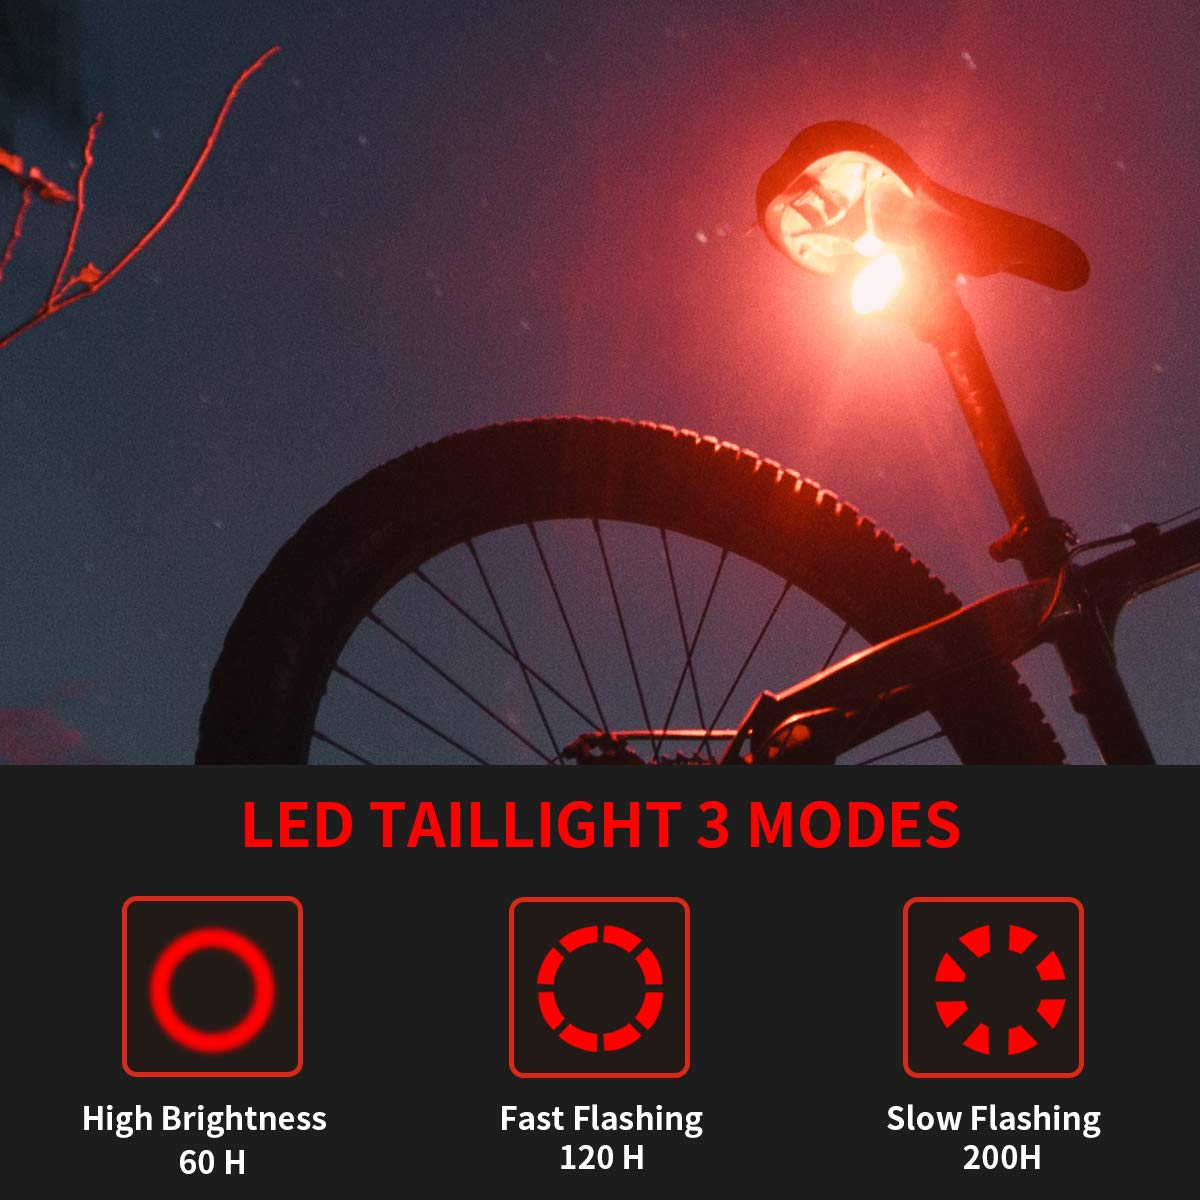 Bicycle Headlight morpilot bike flashlight Rechargeable 700 Lumen Zoom IN/out Bike headlight and Taillight Easy Install & Quick Release Includes Batteries and Charger - 360°swivel bicycle light